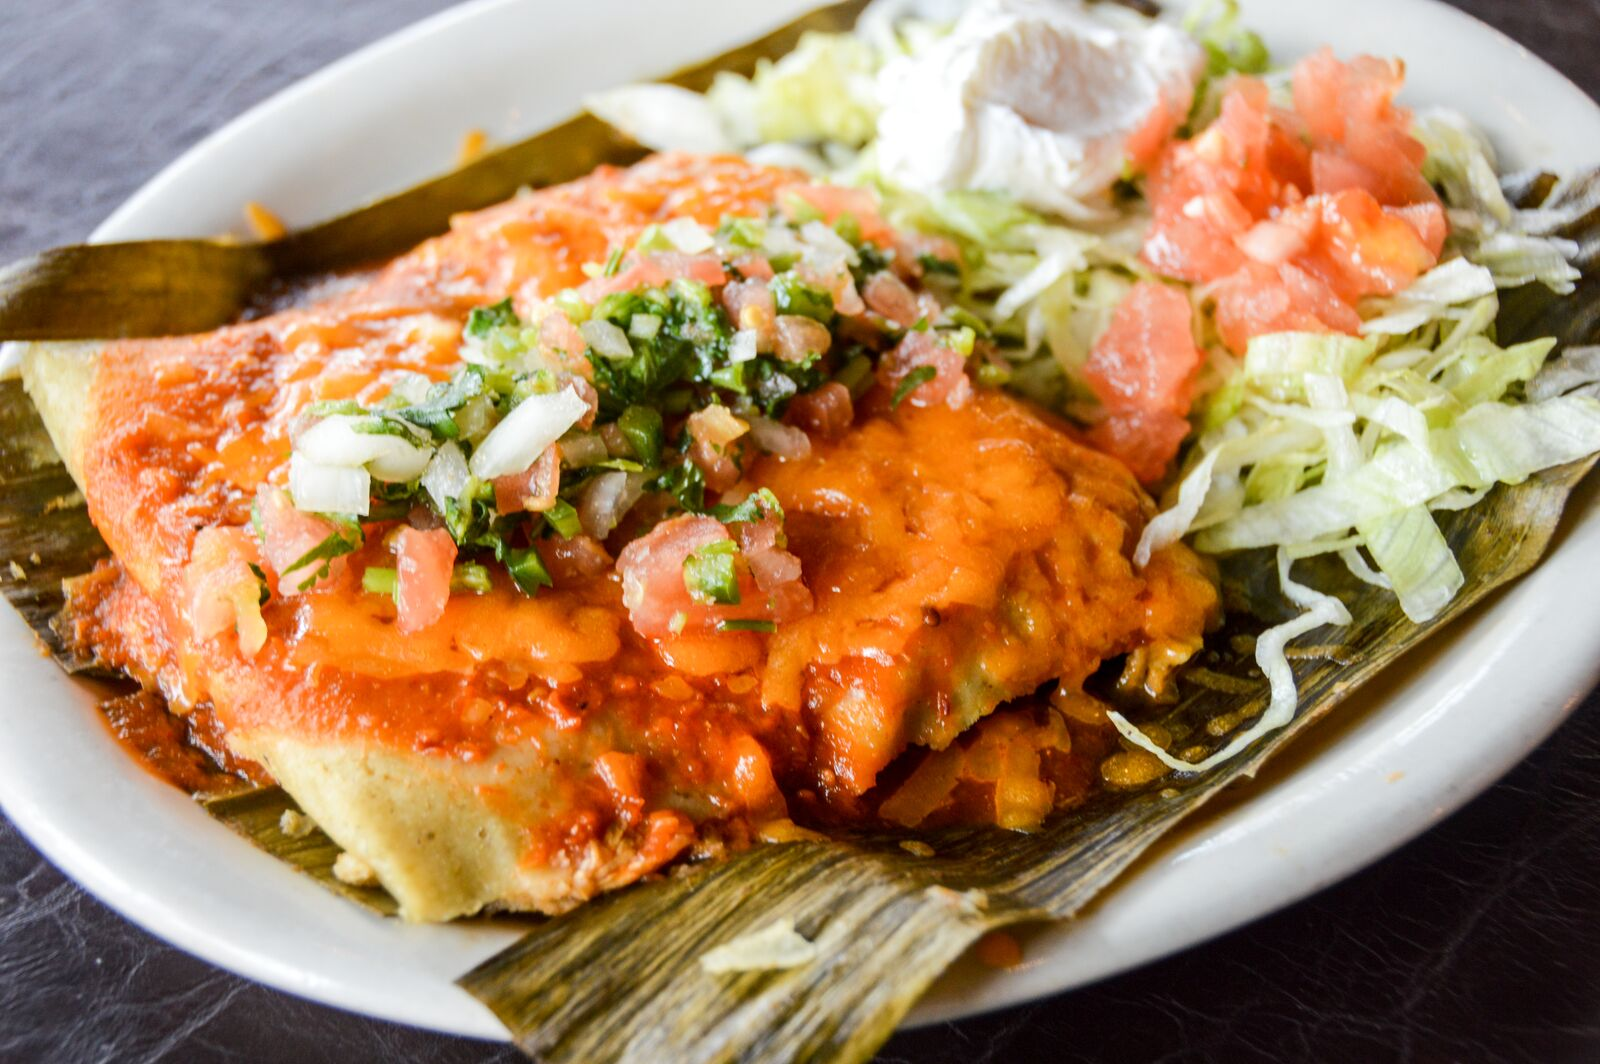 tamales with lettuce, sour cream and diced tomatoes